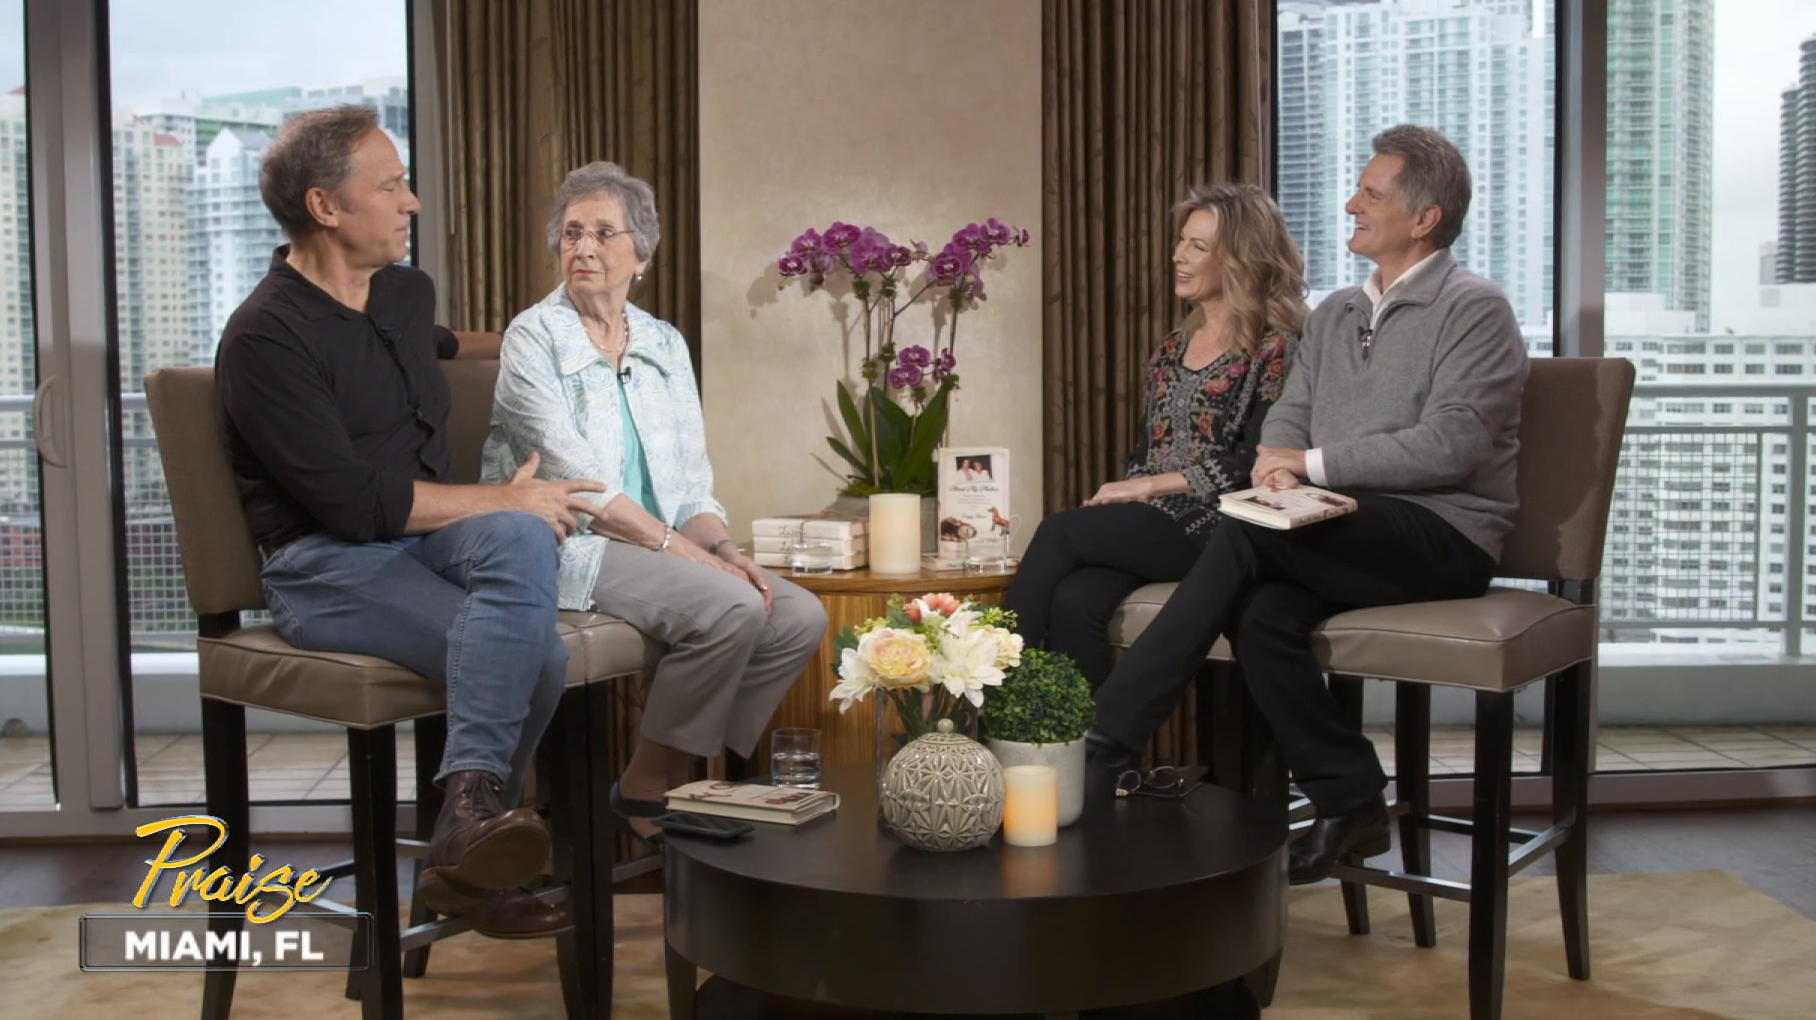 Watch Praise | Mike Rowe & Peggy Rowe | 4/1/19